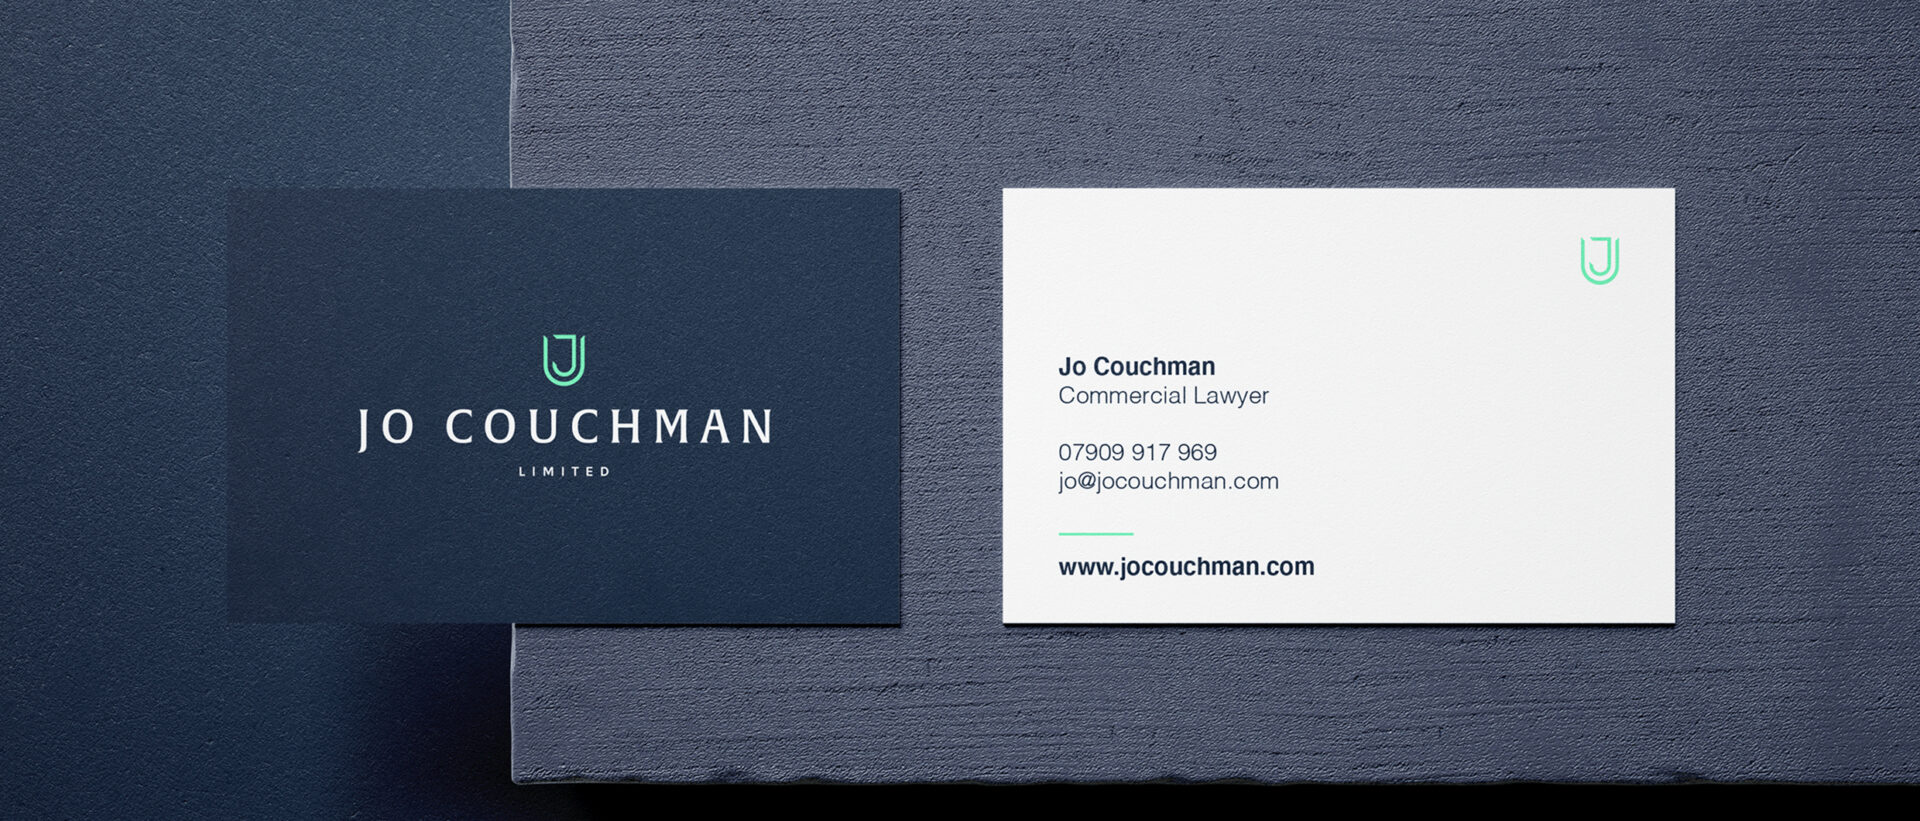 Jo Couchman business cards